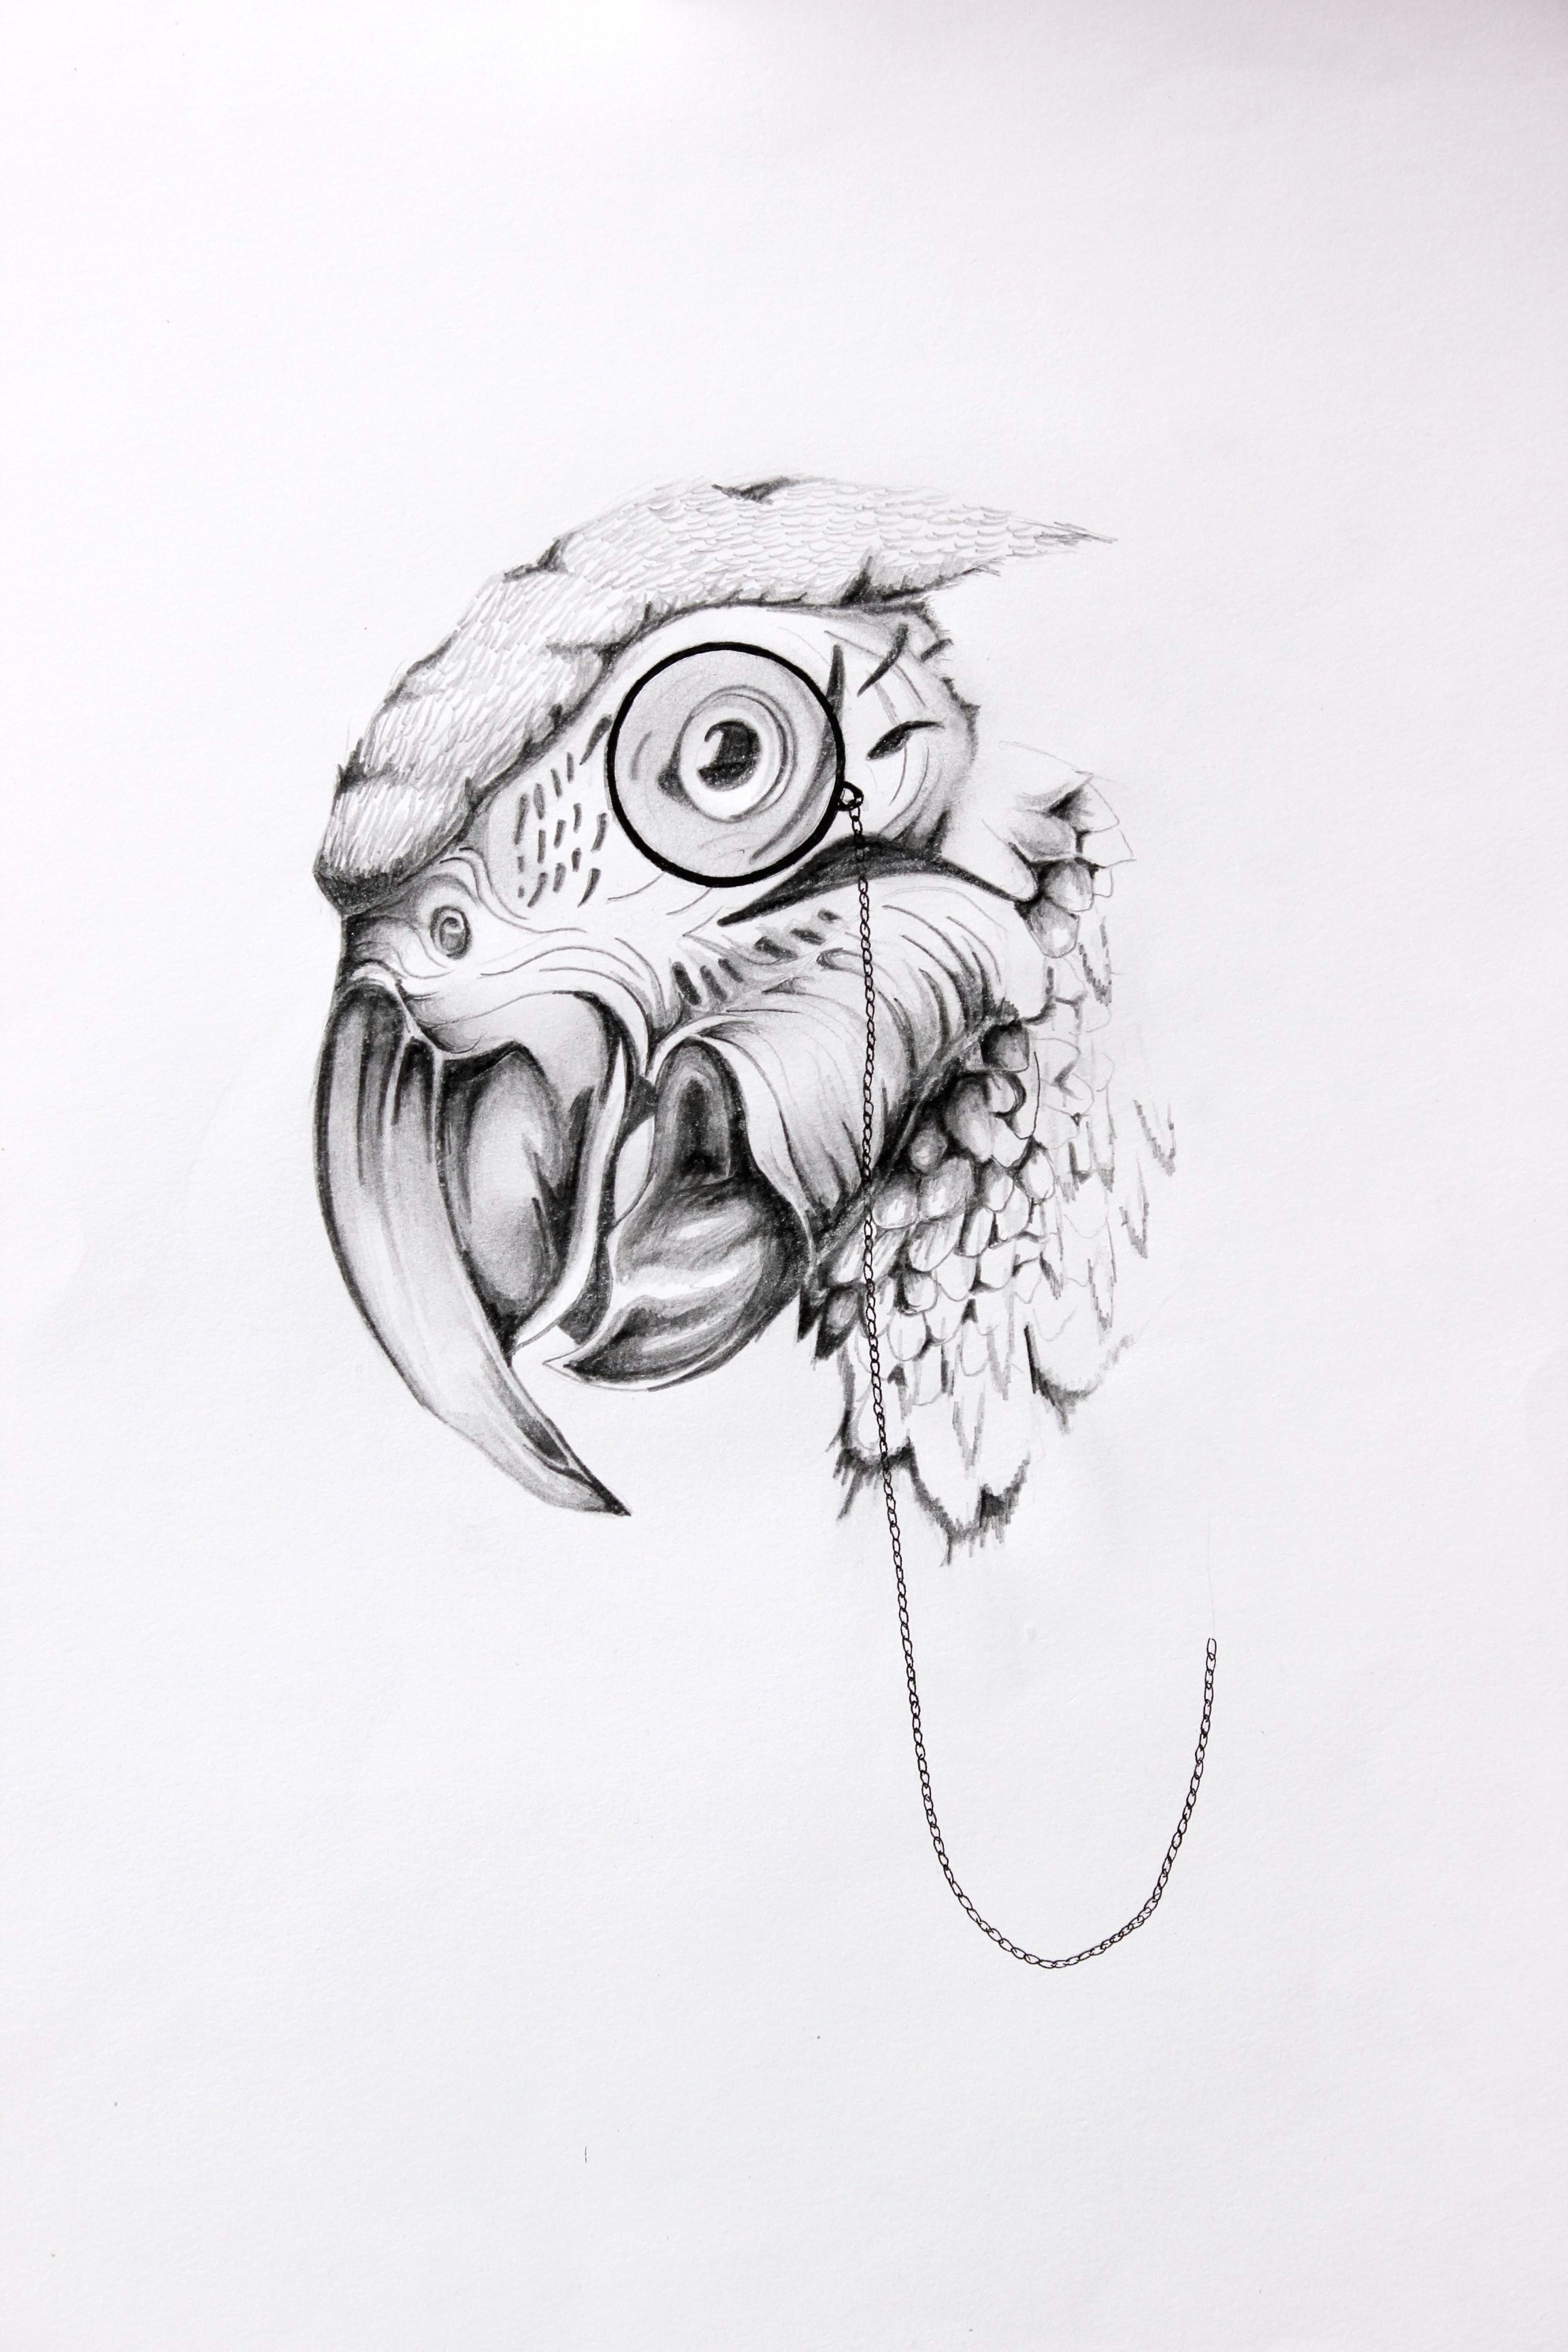 parrot eye www beboris co uk ink illustration artwork